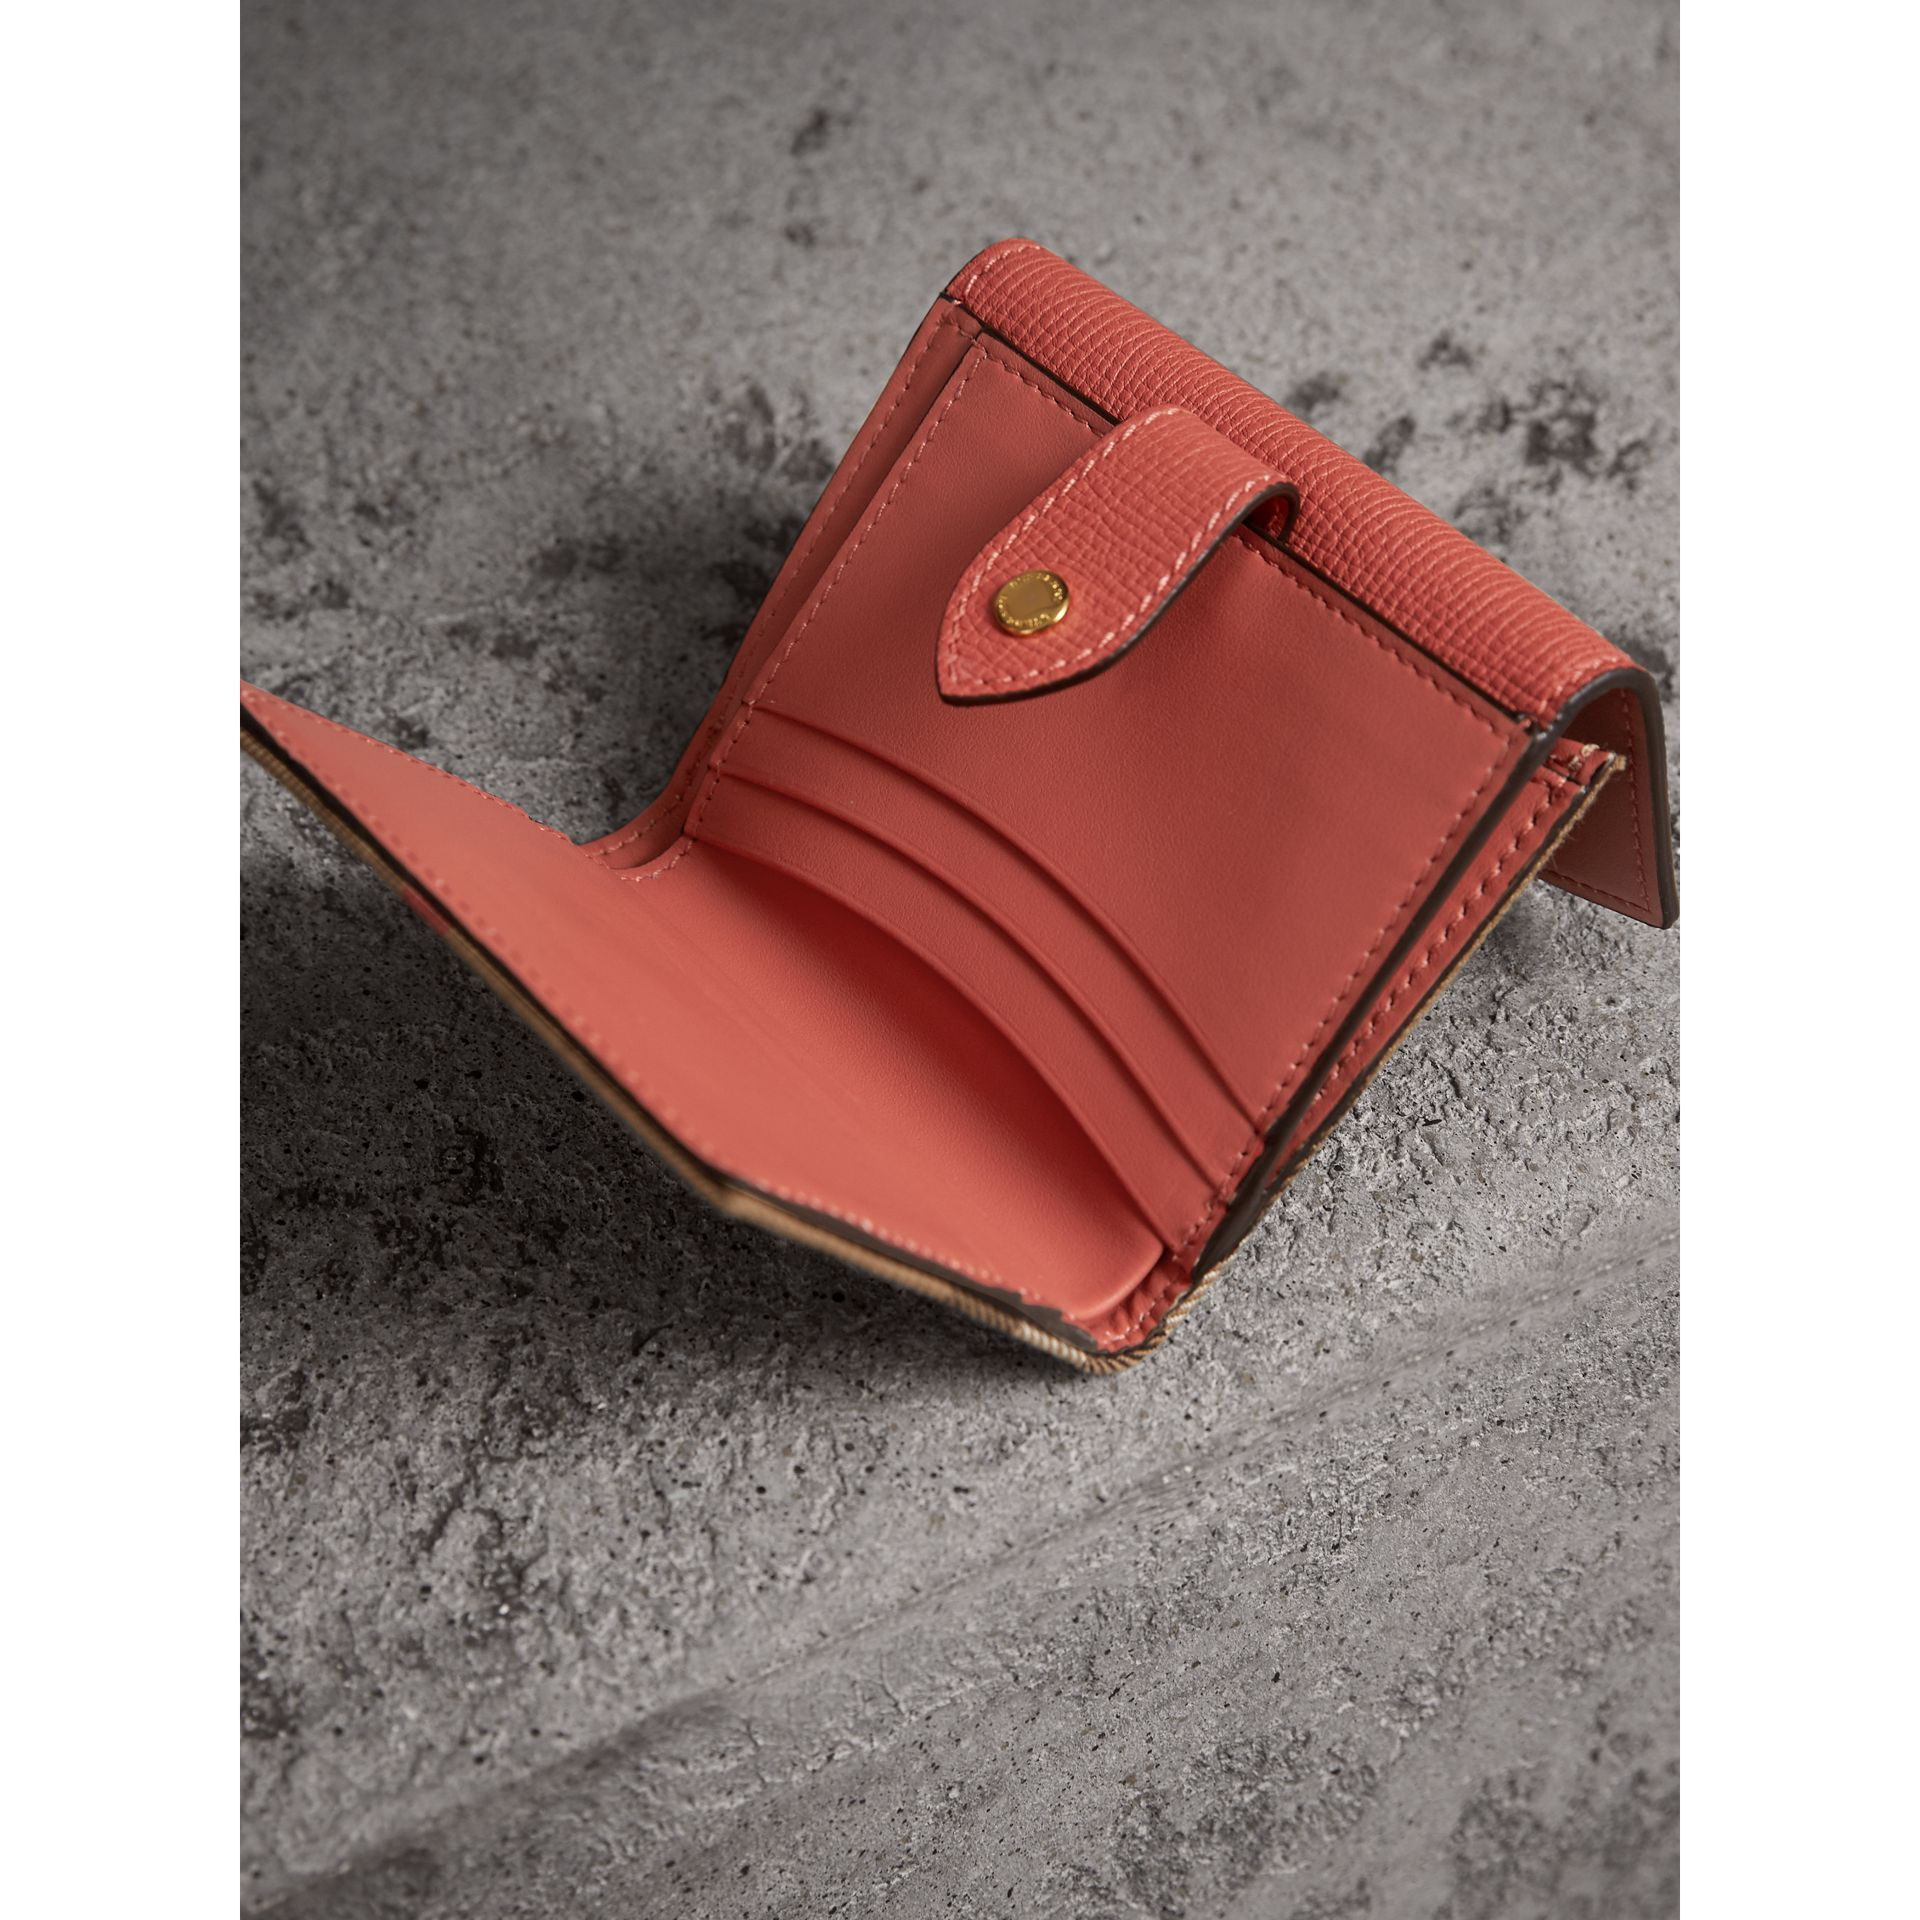 House Check and Leather Wallet in Cinnamon Red - Women | Burberry - gallery image 3